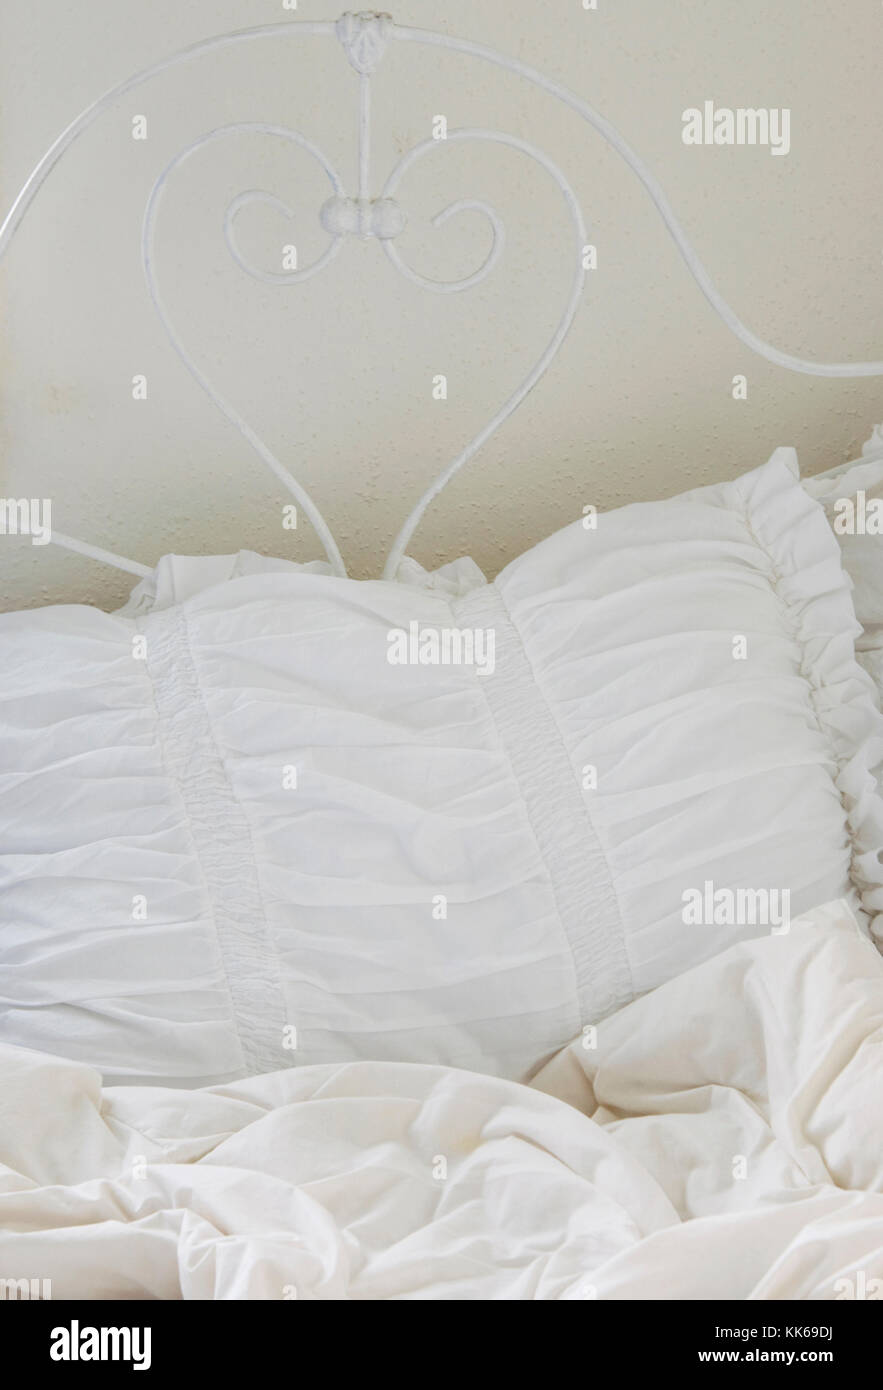 An image of a white bed - Stock Image